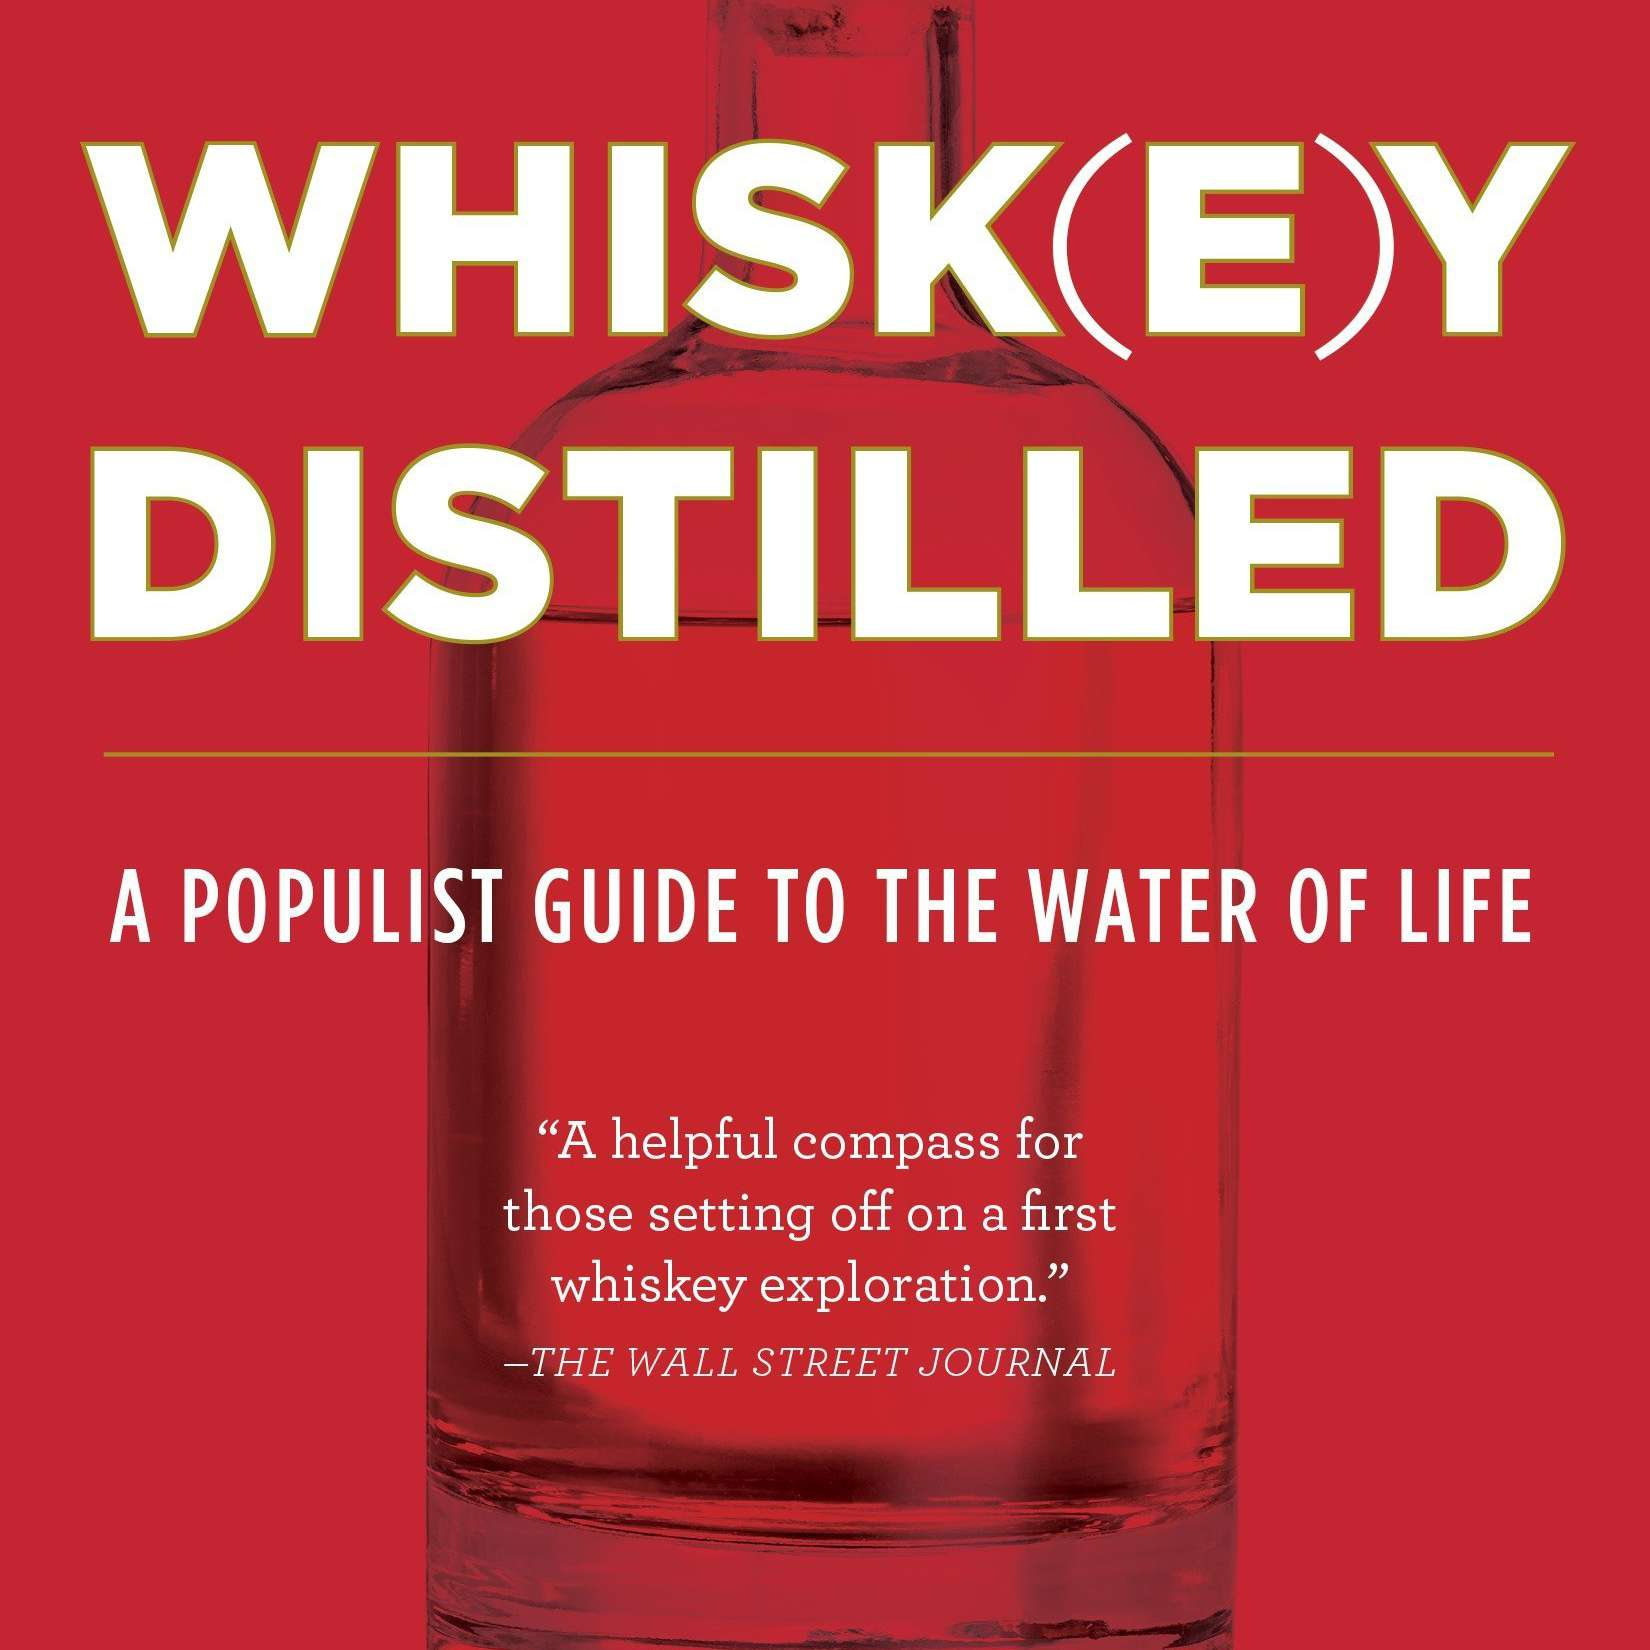 Whiskey Distilled: A Populist Guide to the Water of Life